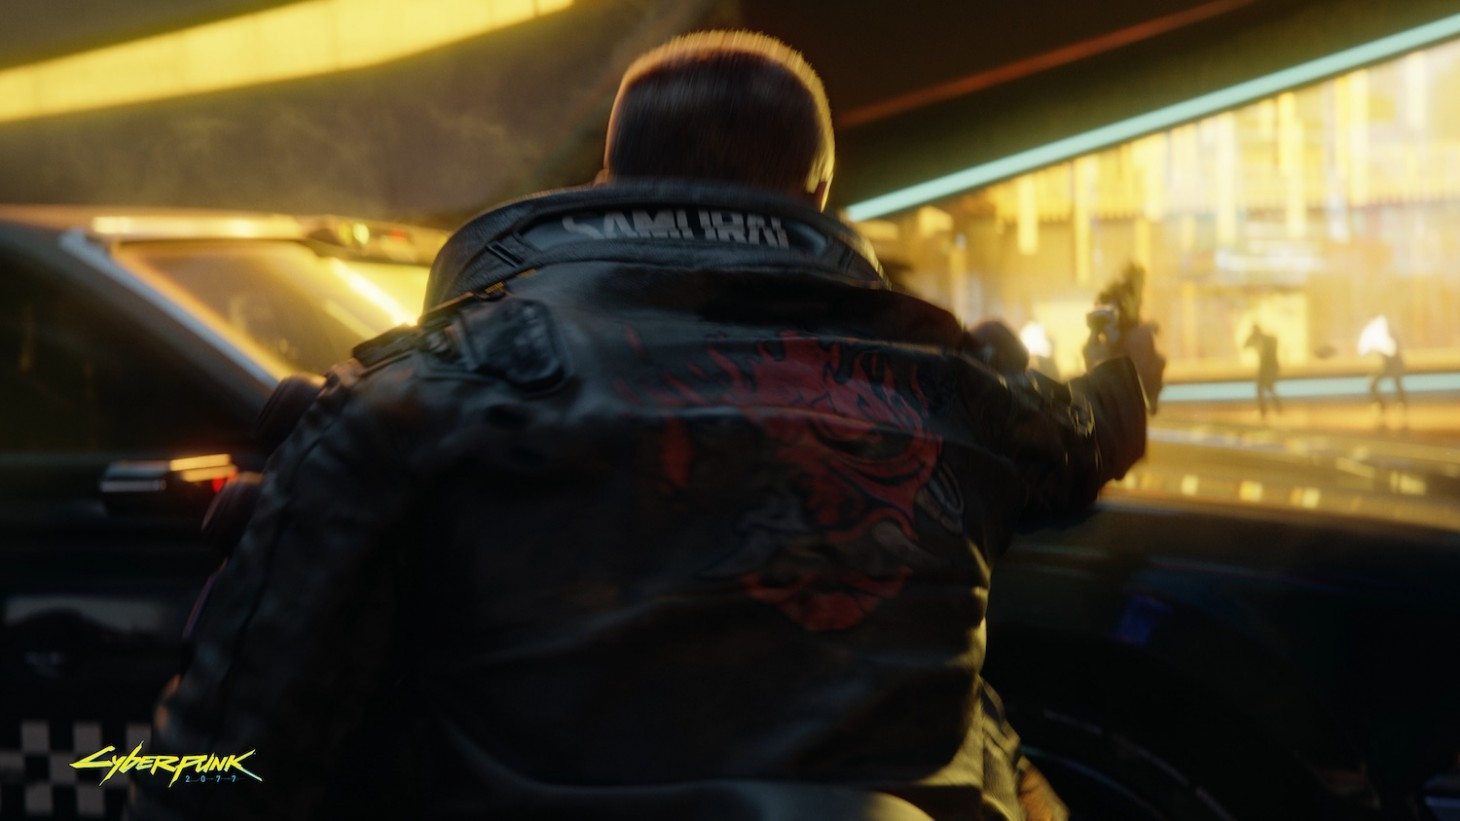 cyberpunk2077 in and out rgb en